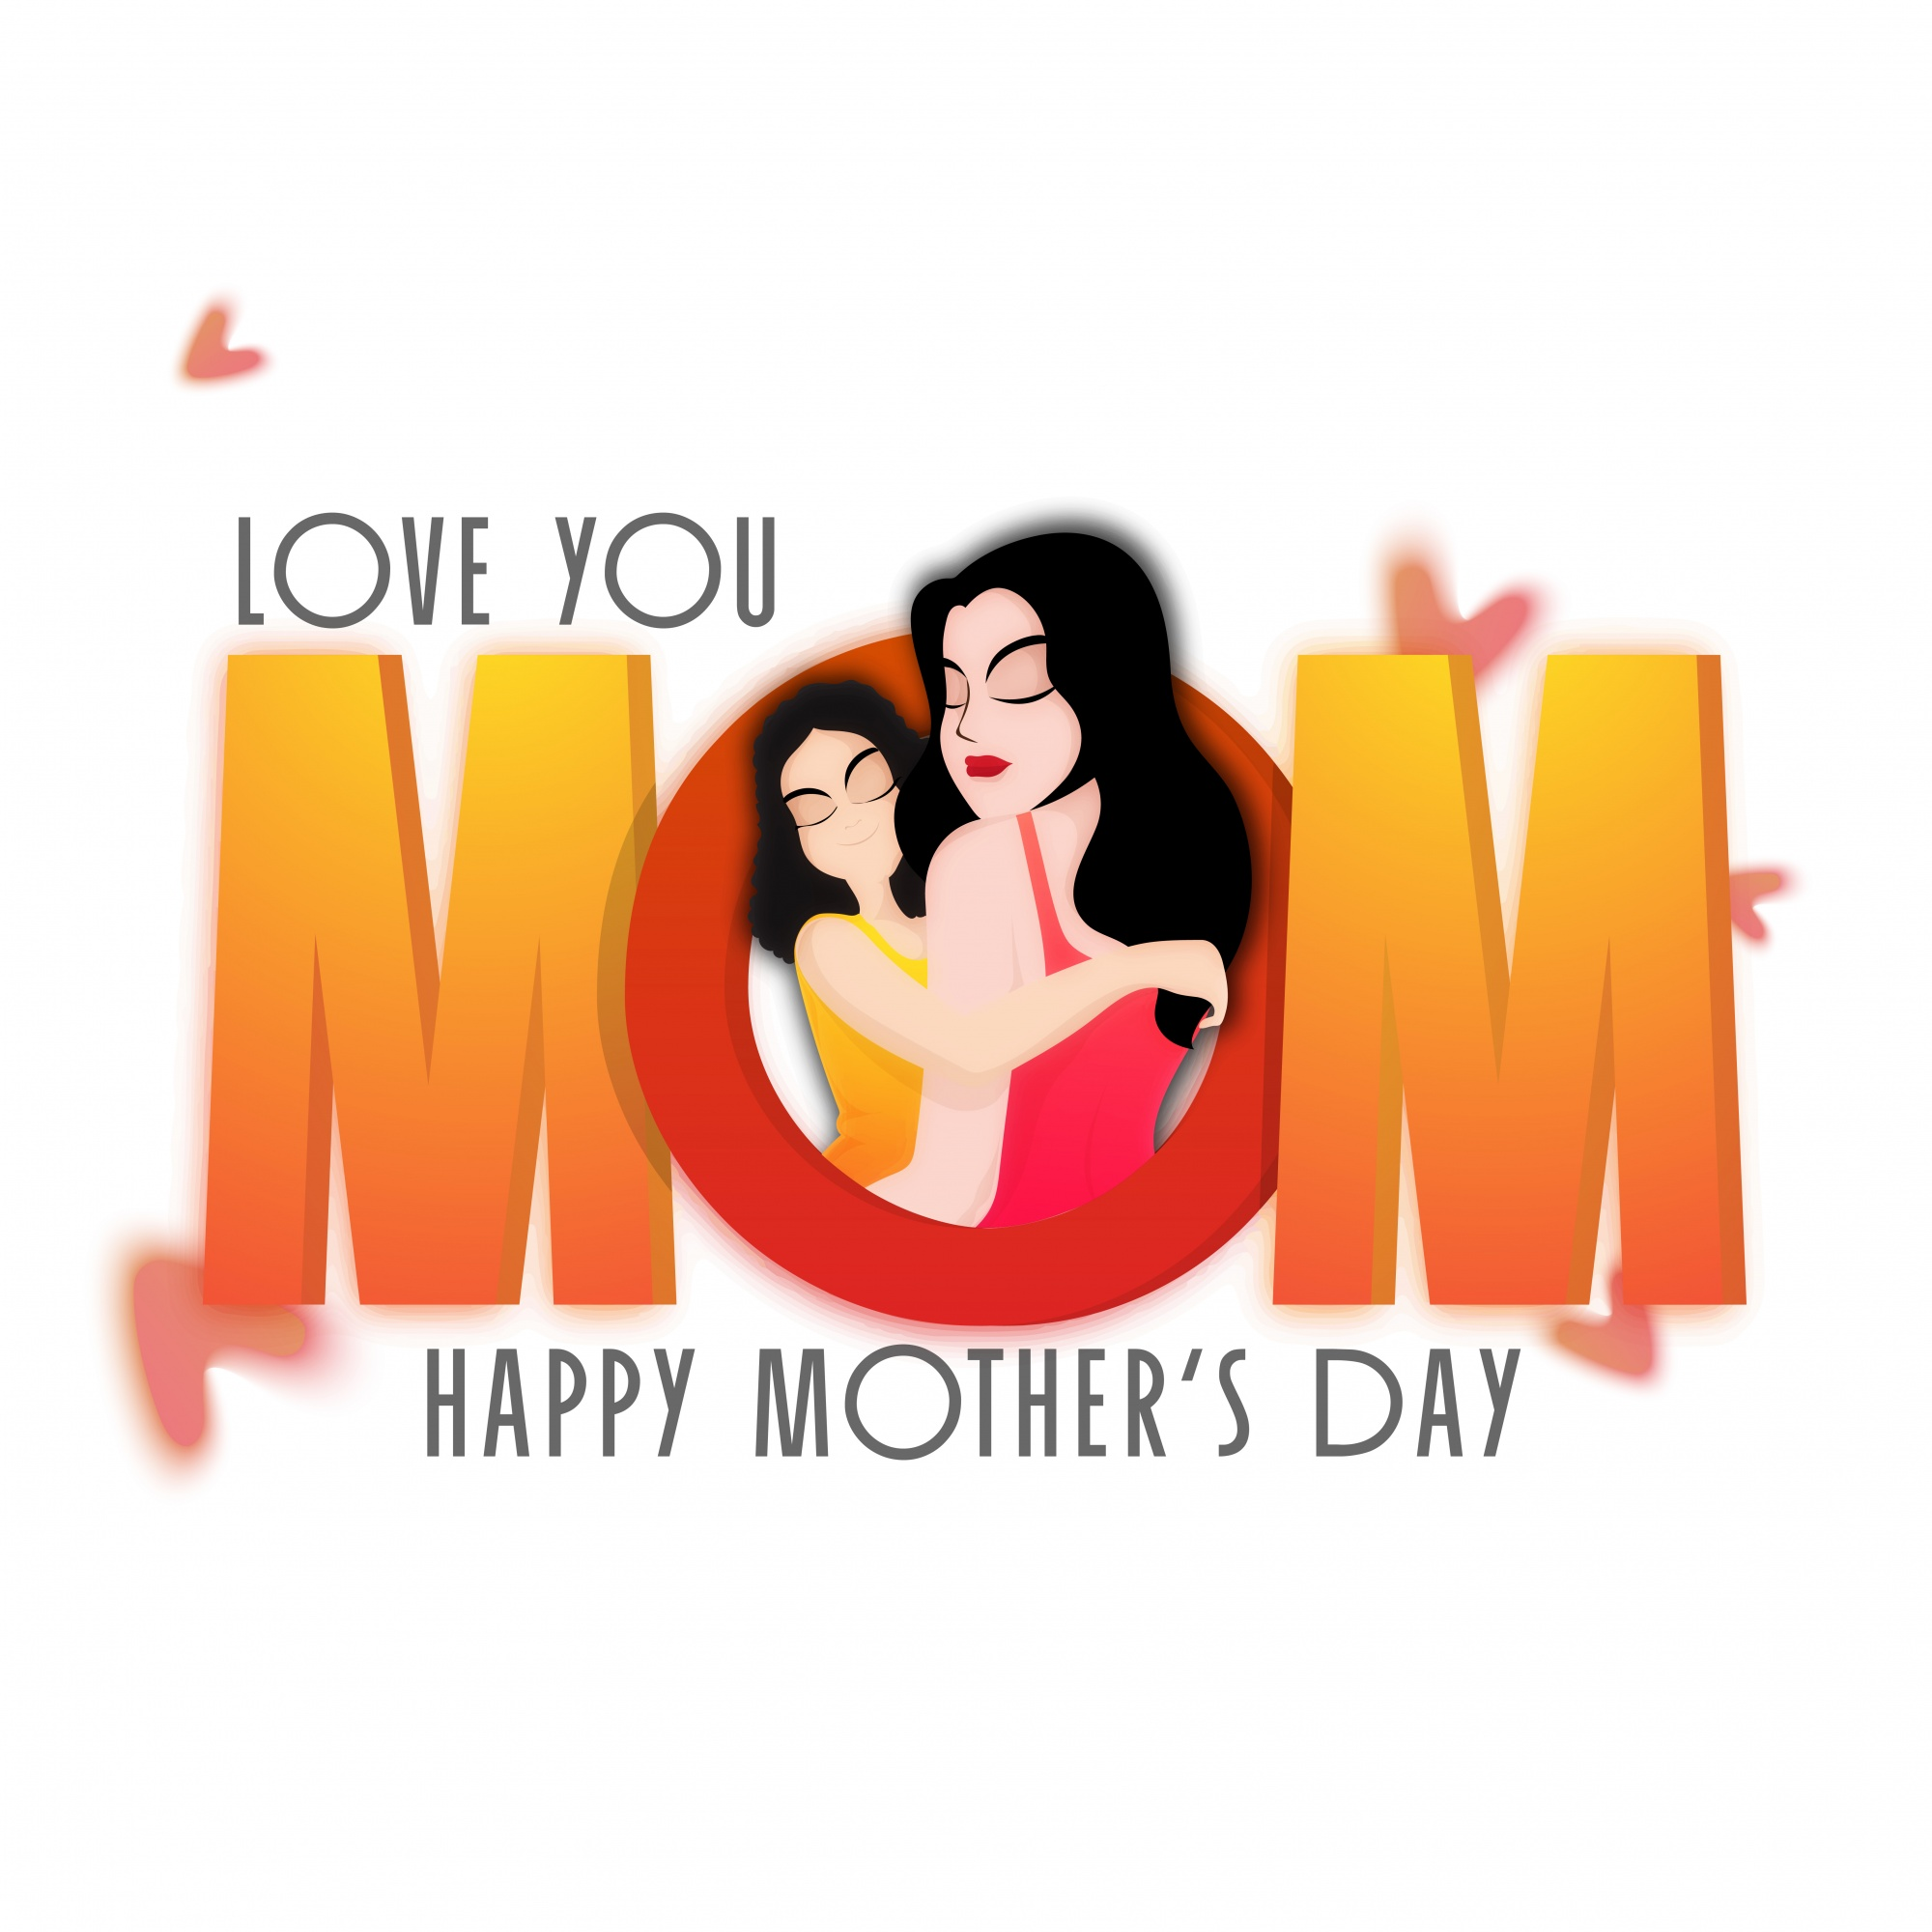 Happy Mother's Day celebration greeting card design with 3D text Mom and illustration of a daughter hugging her mother